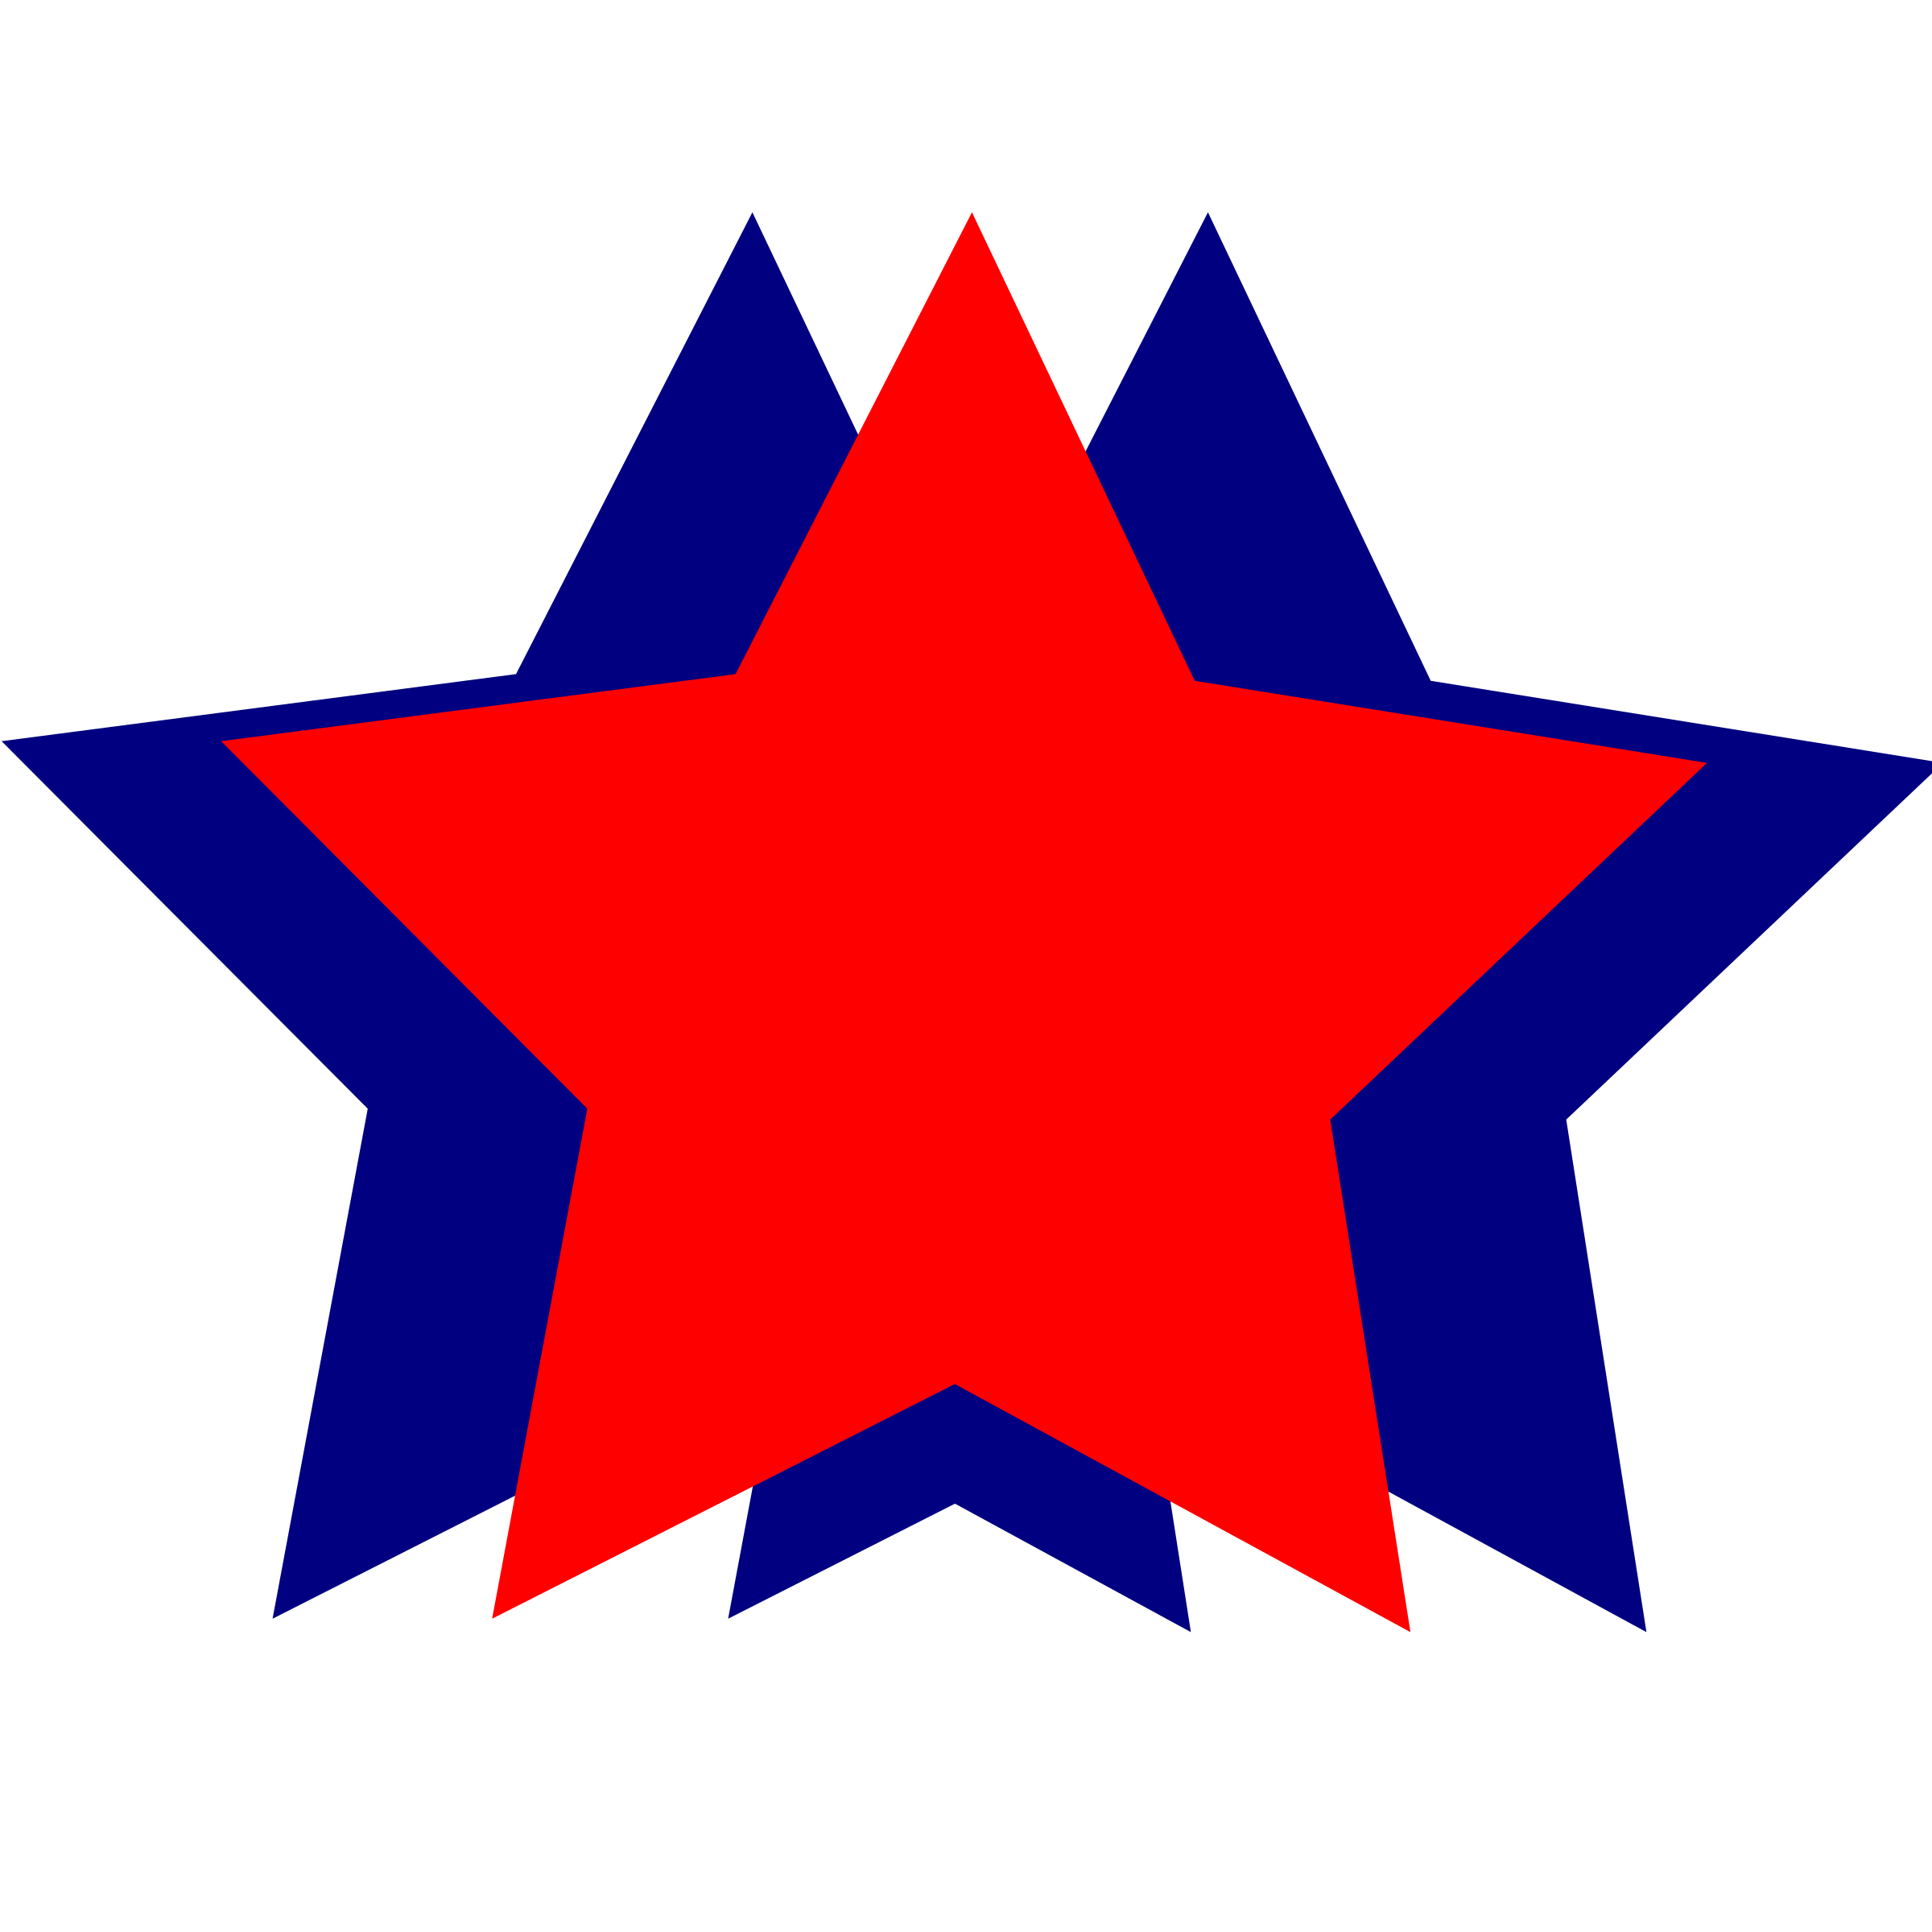 Red White And Blue Stars Clipart - Clipart Suggest - photo#3